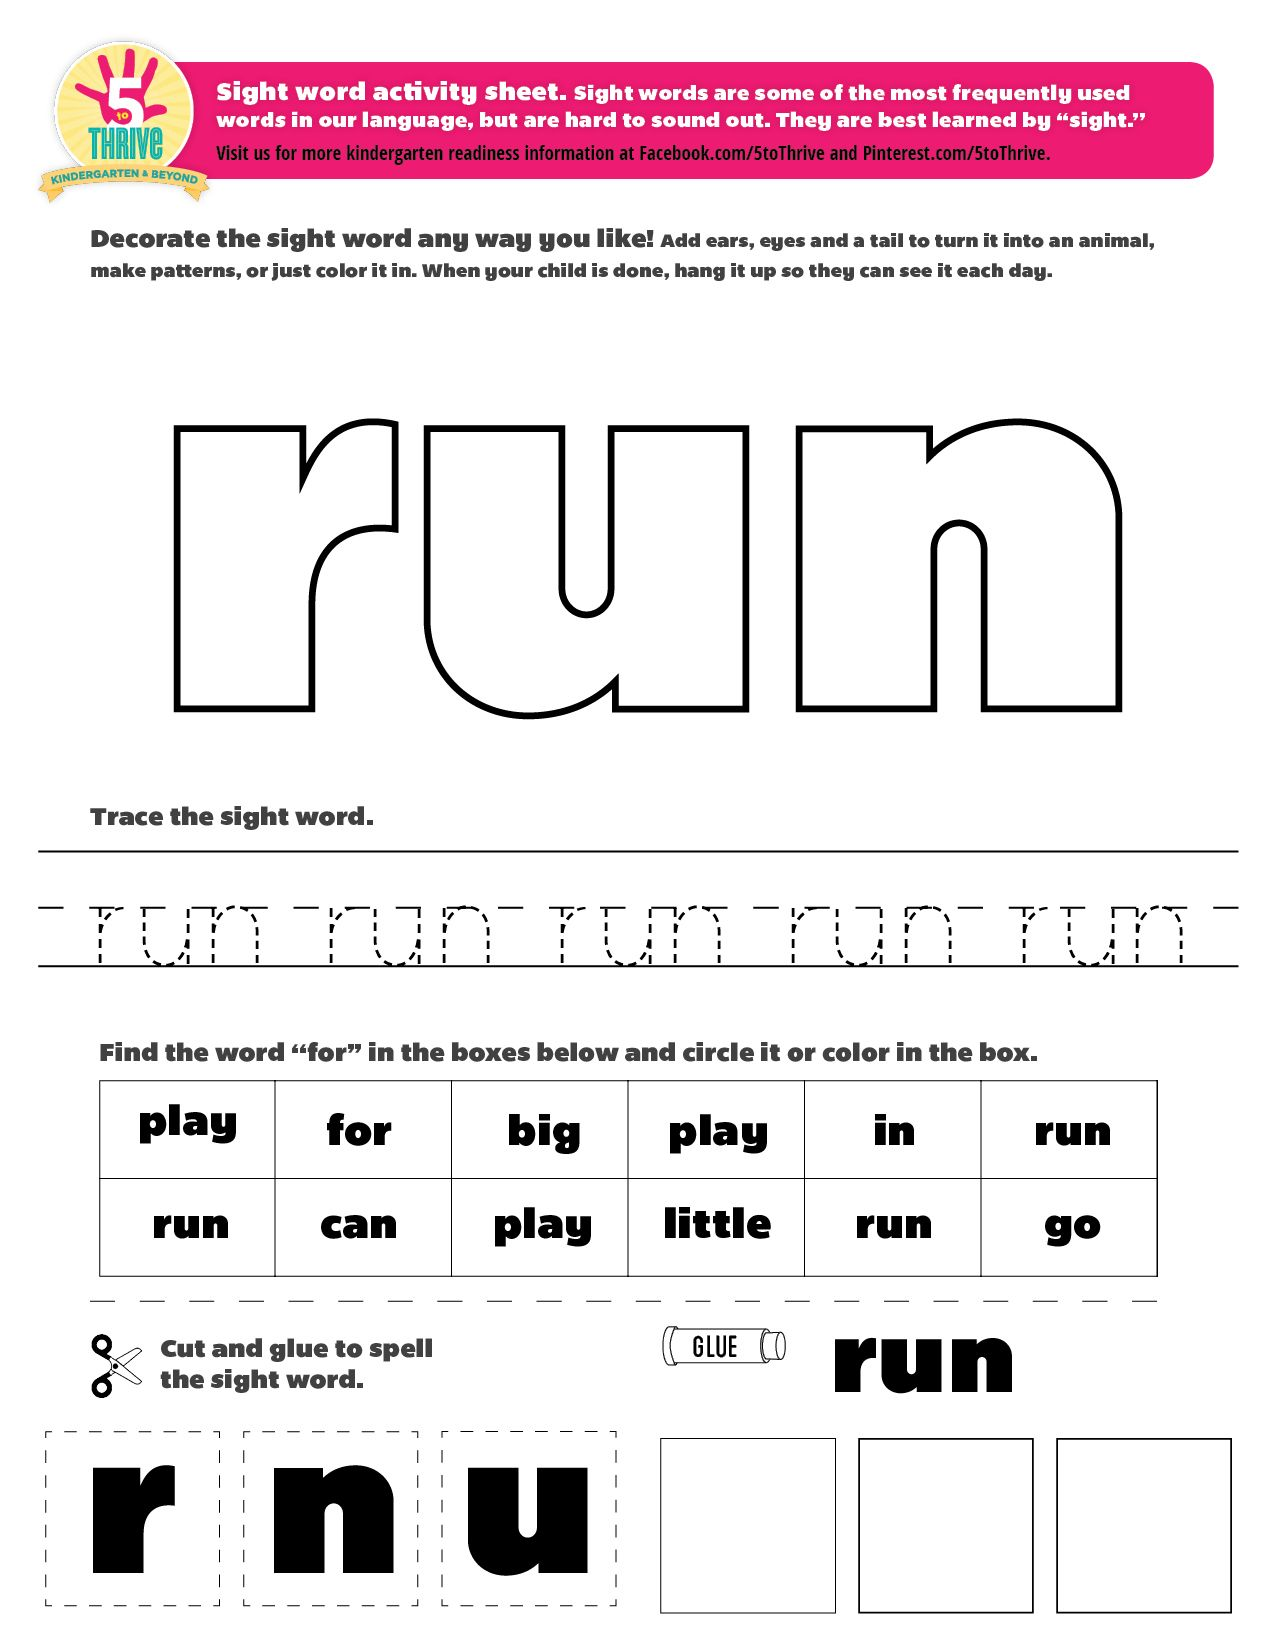 The Sight Word This Week Is Run Sight Words Are Some Of